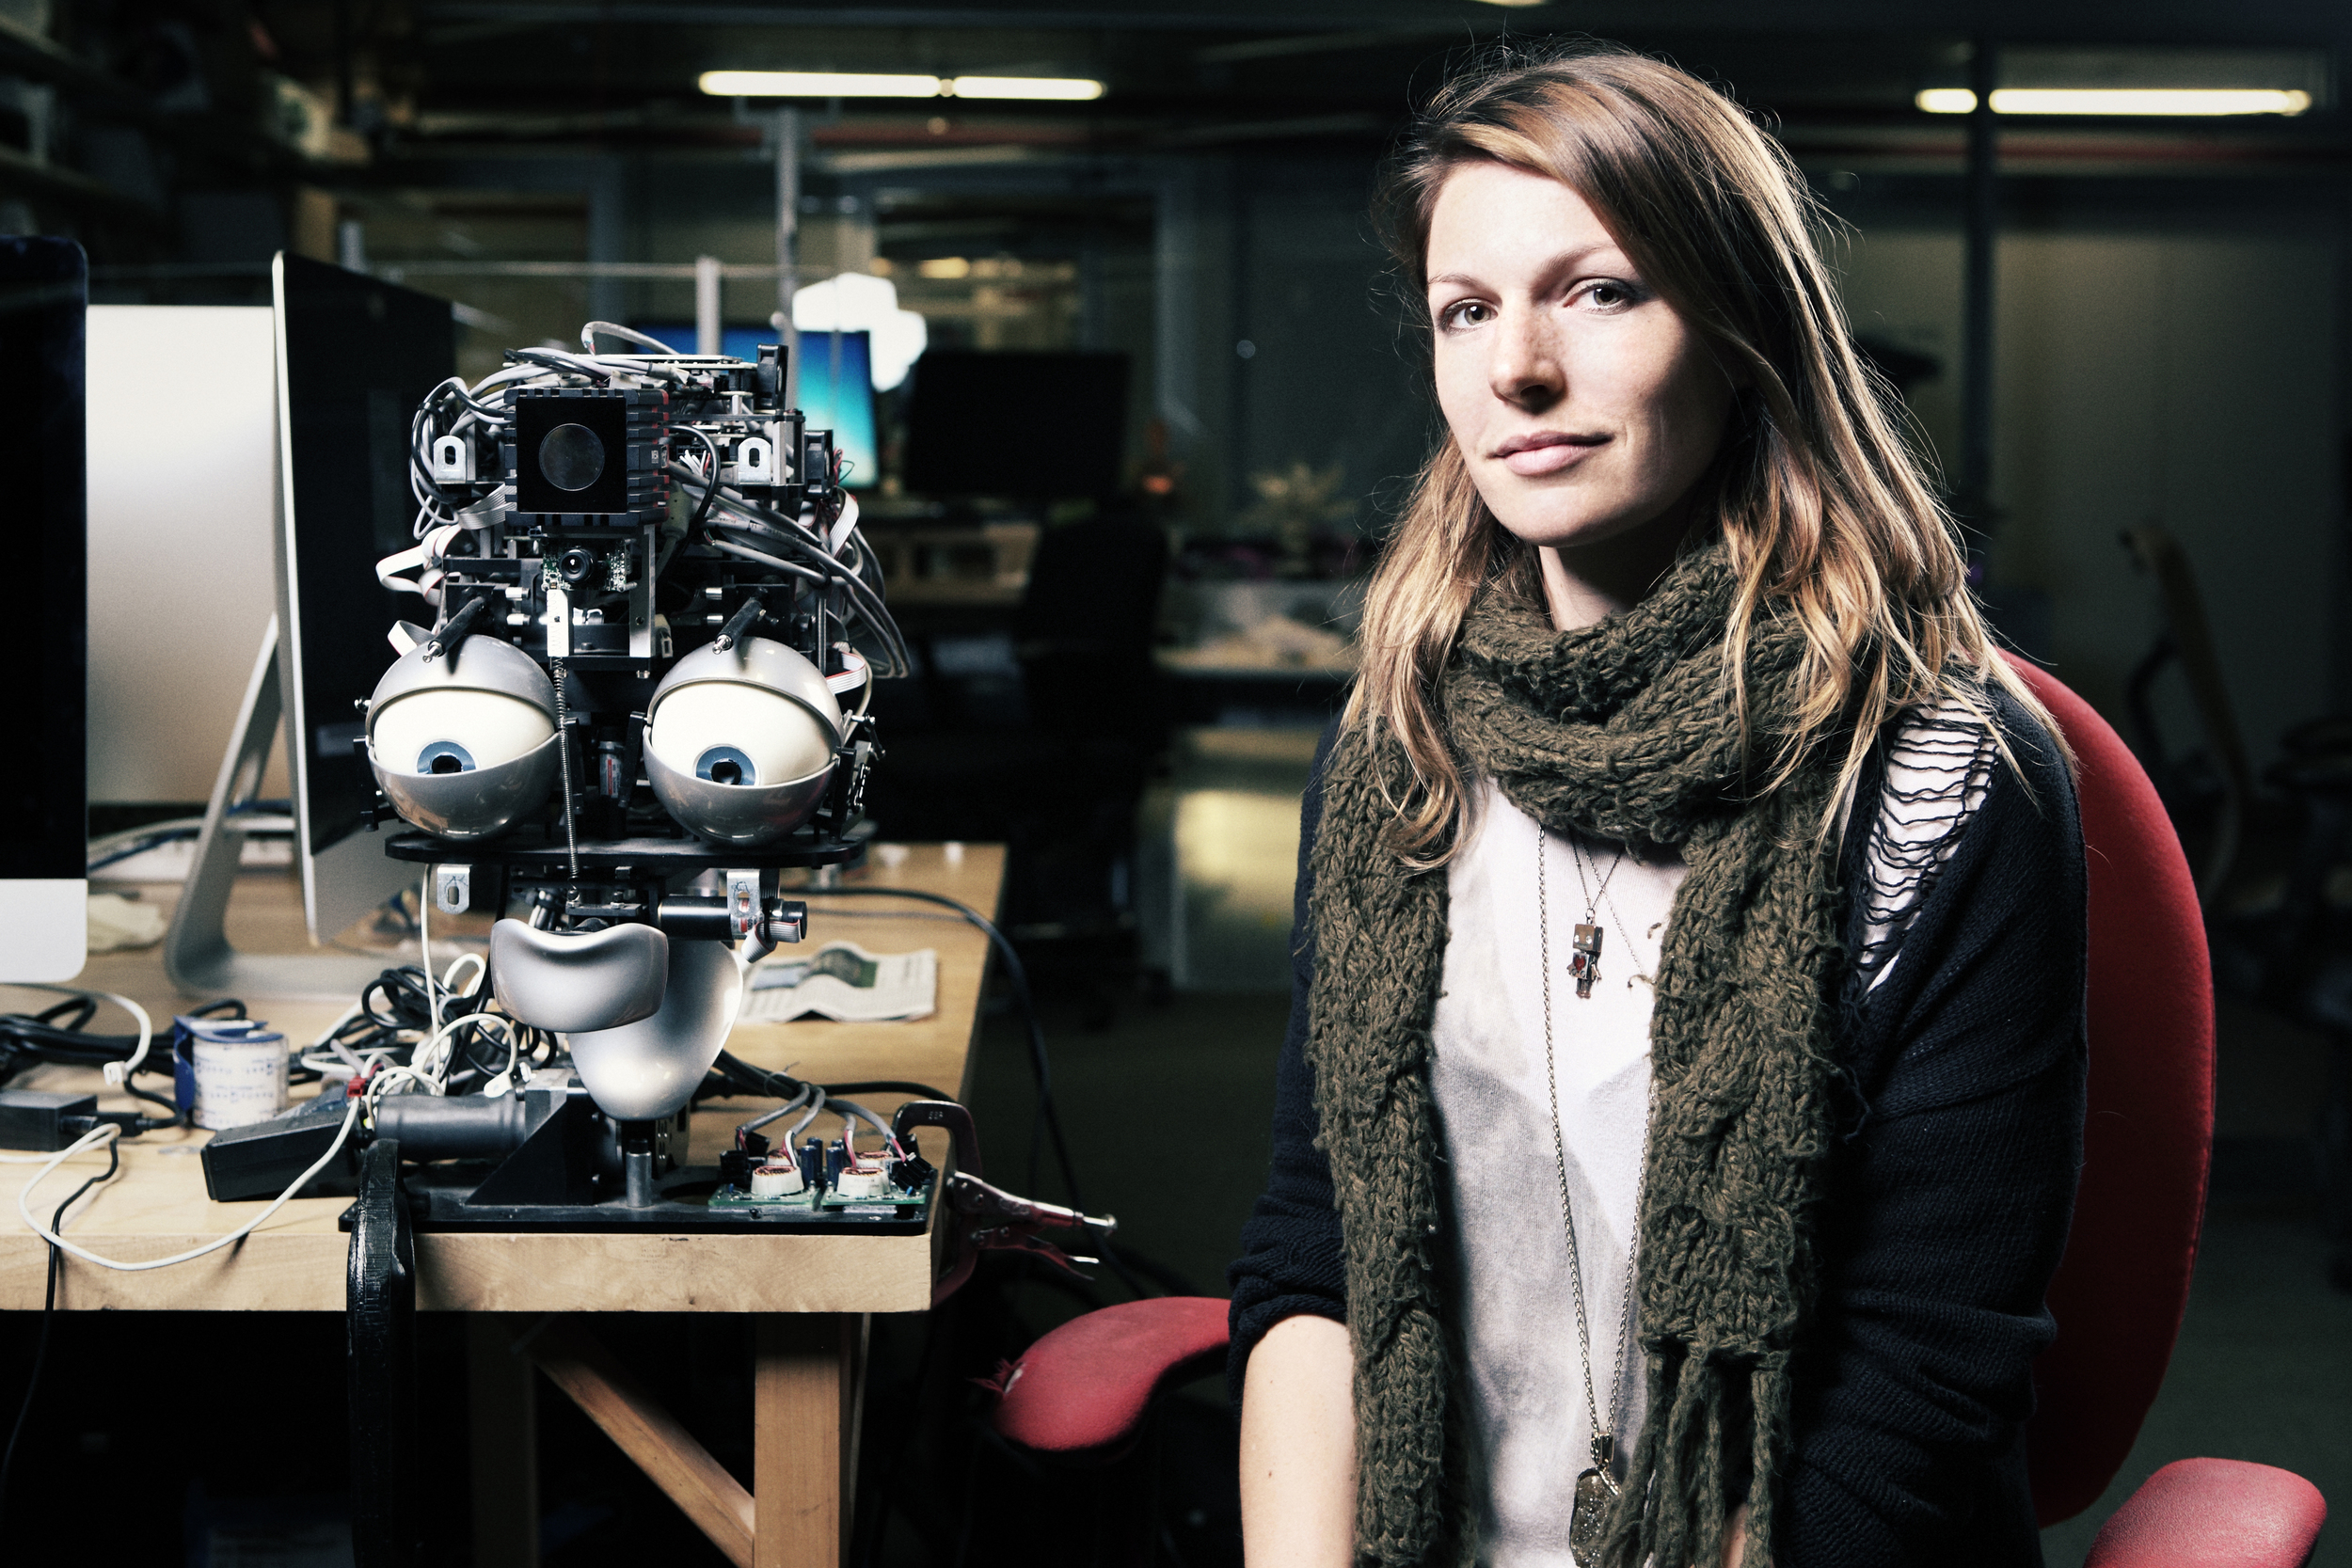 Photo: Flavia Schaub. Robot: project by Nick DePalma @ Personal Robots Group, MIT Media Lab